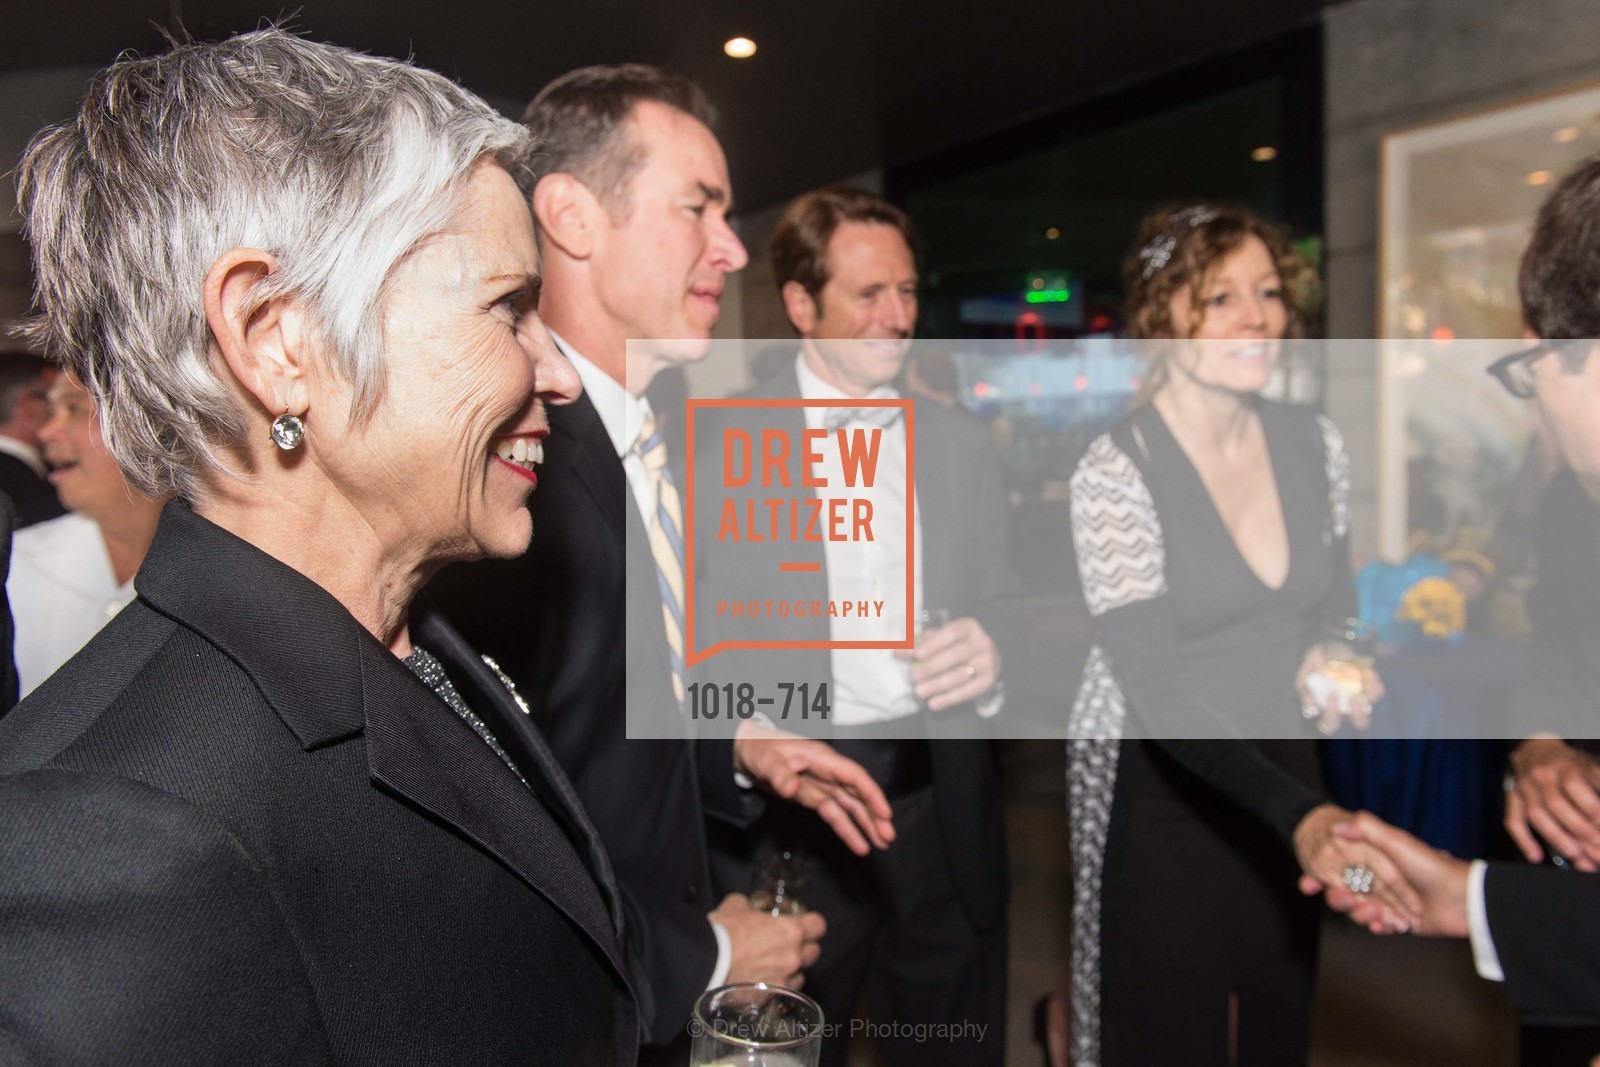 Laura Lazarus, SFJAZZ Gala 2015 Honors Joni Mitchell with Lifetime Achievement Award, US, May 9th, 2015,Drew Altizer, Drew Altizer Photography, full-service agency, private events, San Francisco photographer, photographer california